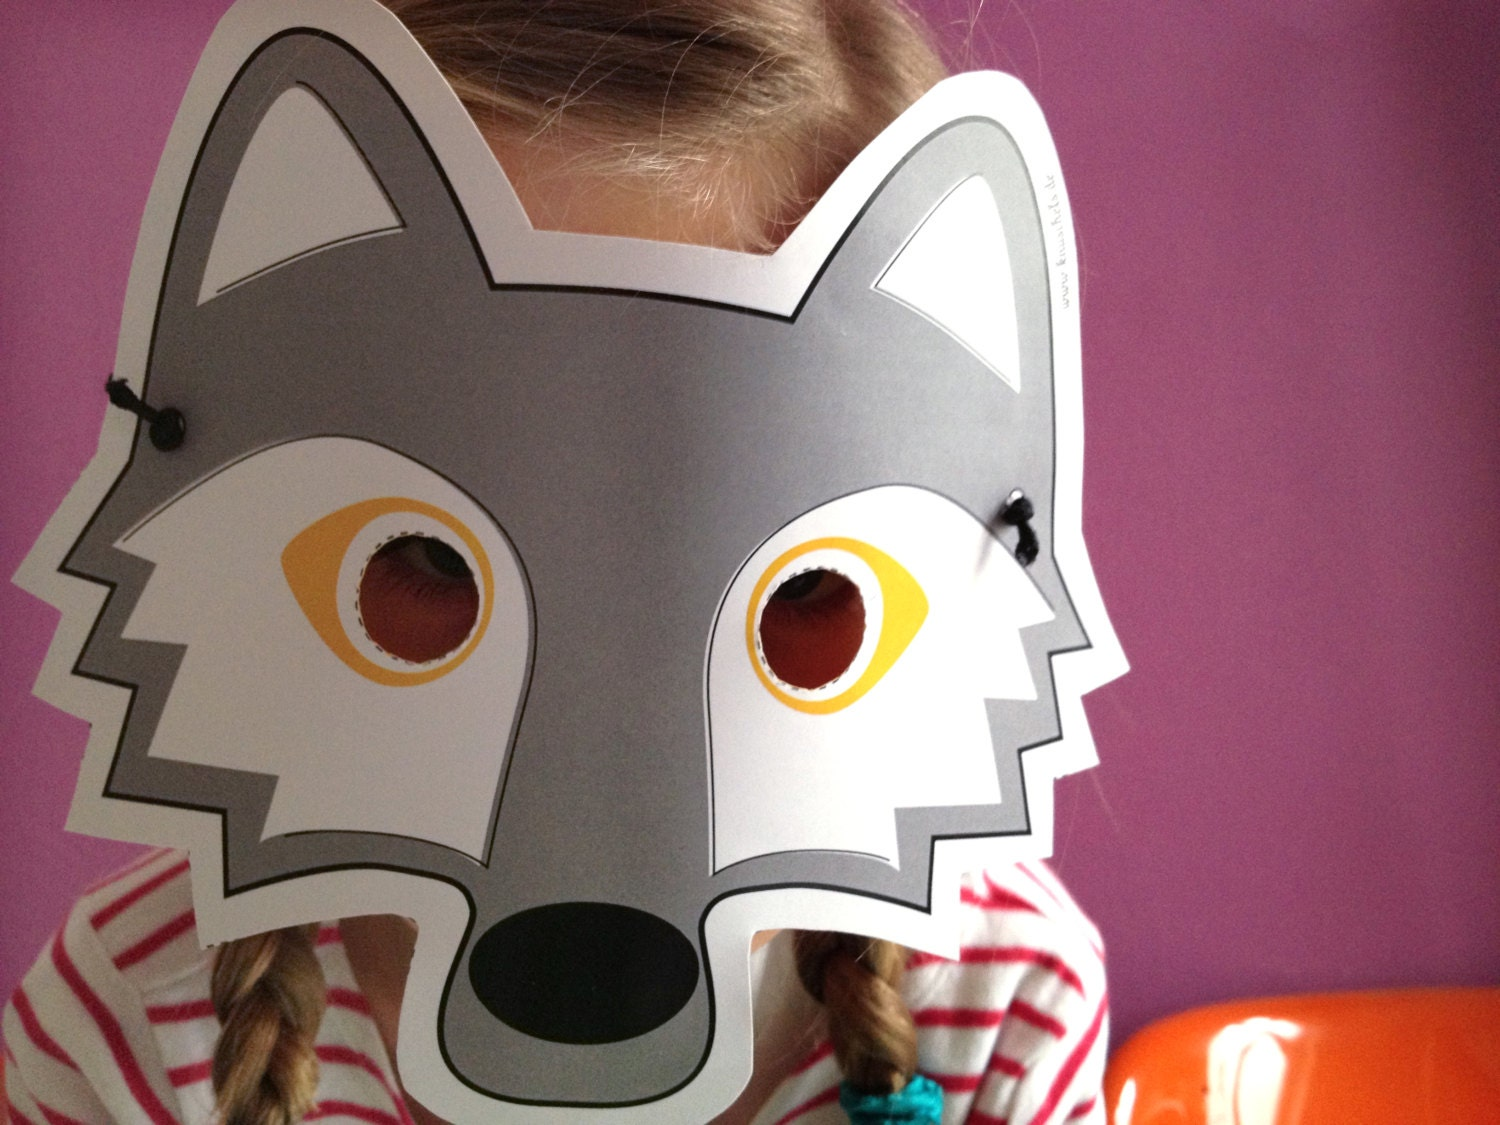 Dynamic image with regard to printable wolf masks